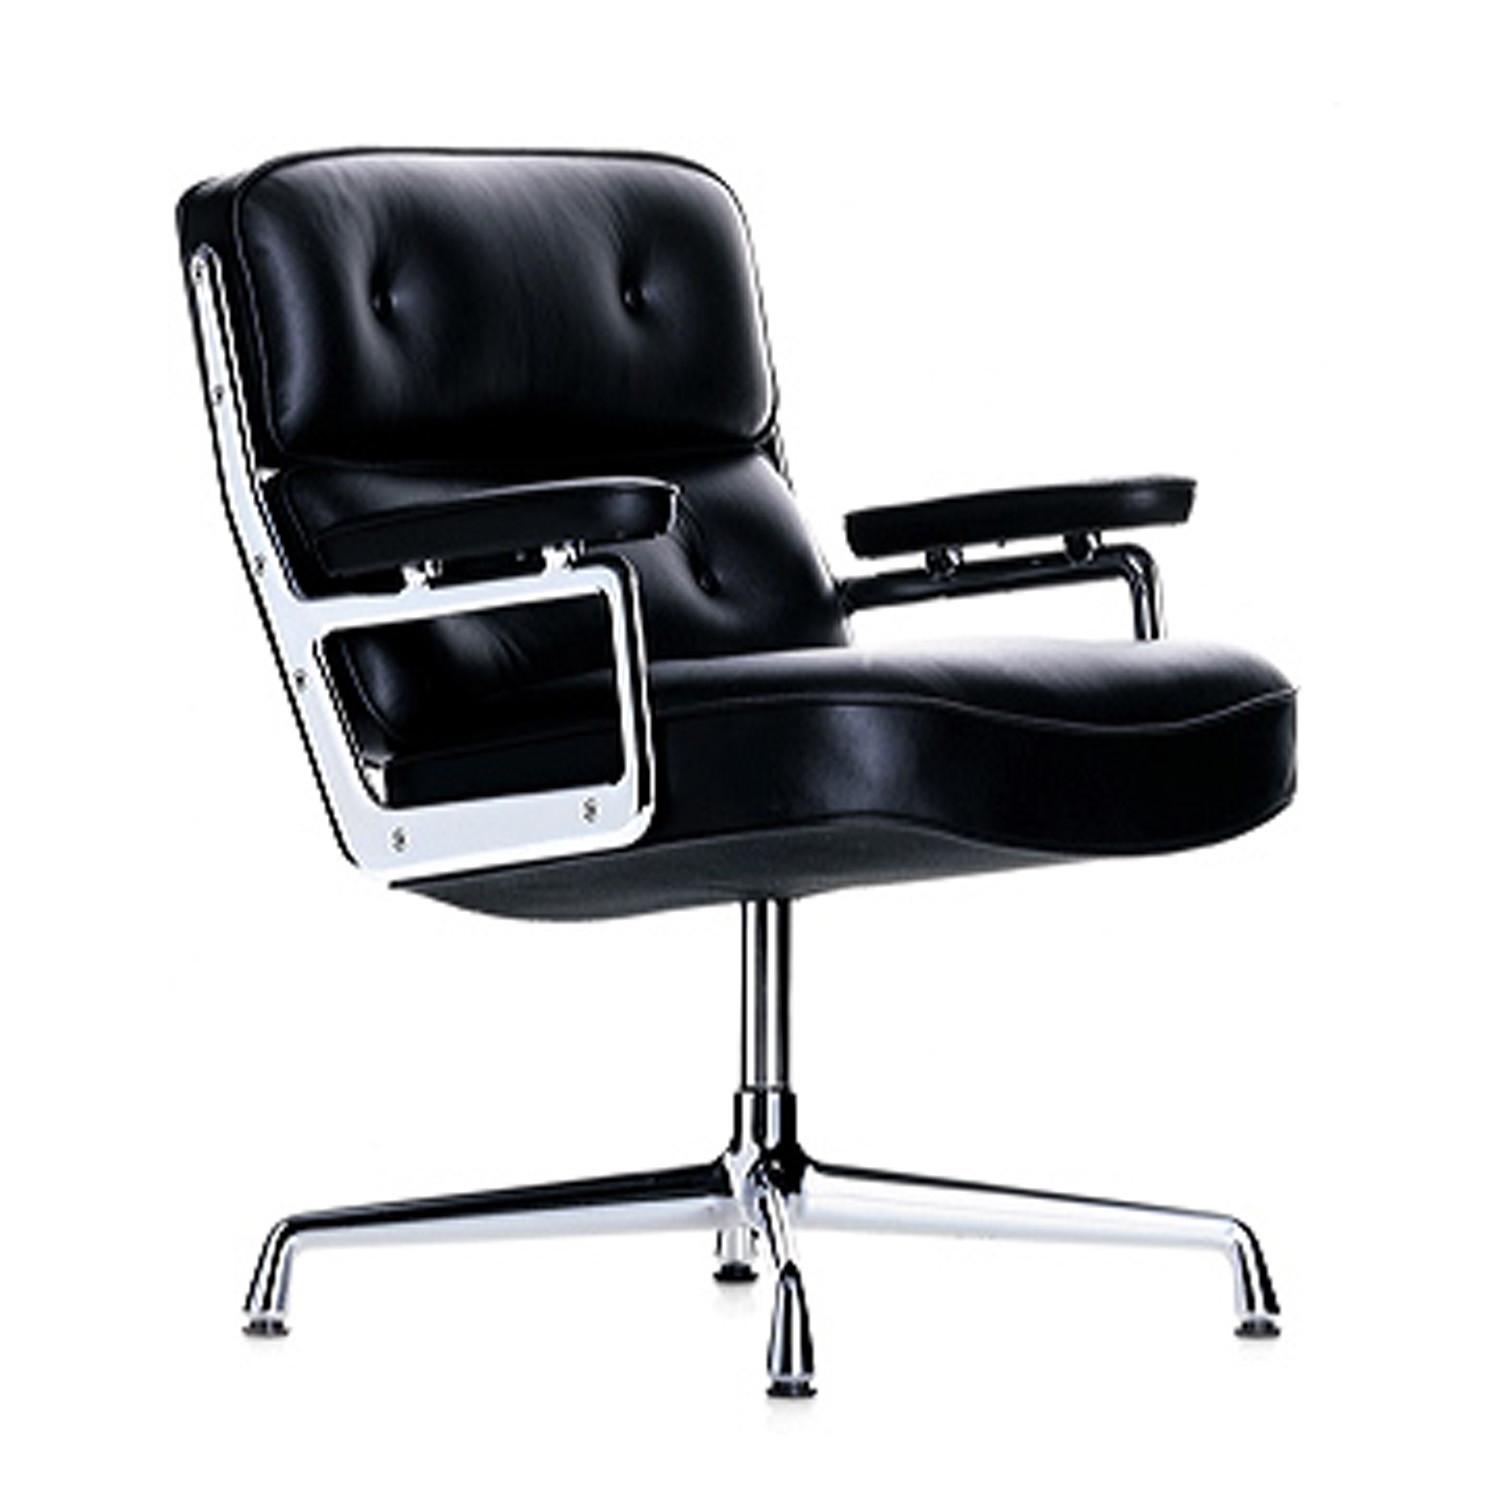 Lobby Chair ES 108 from Vitra